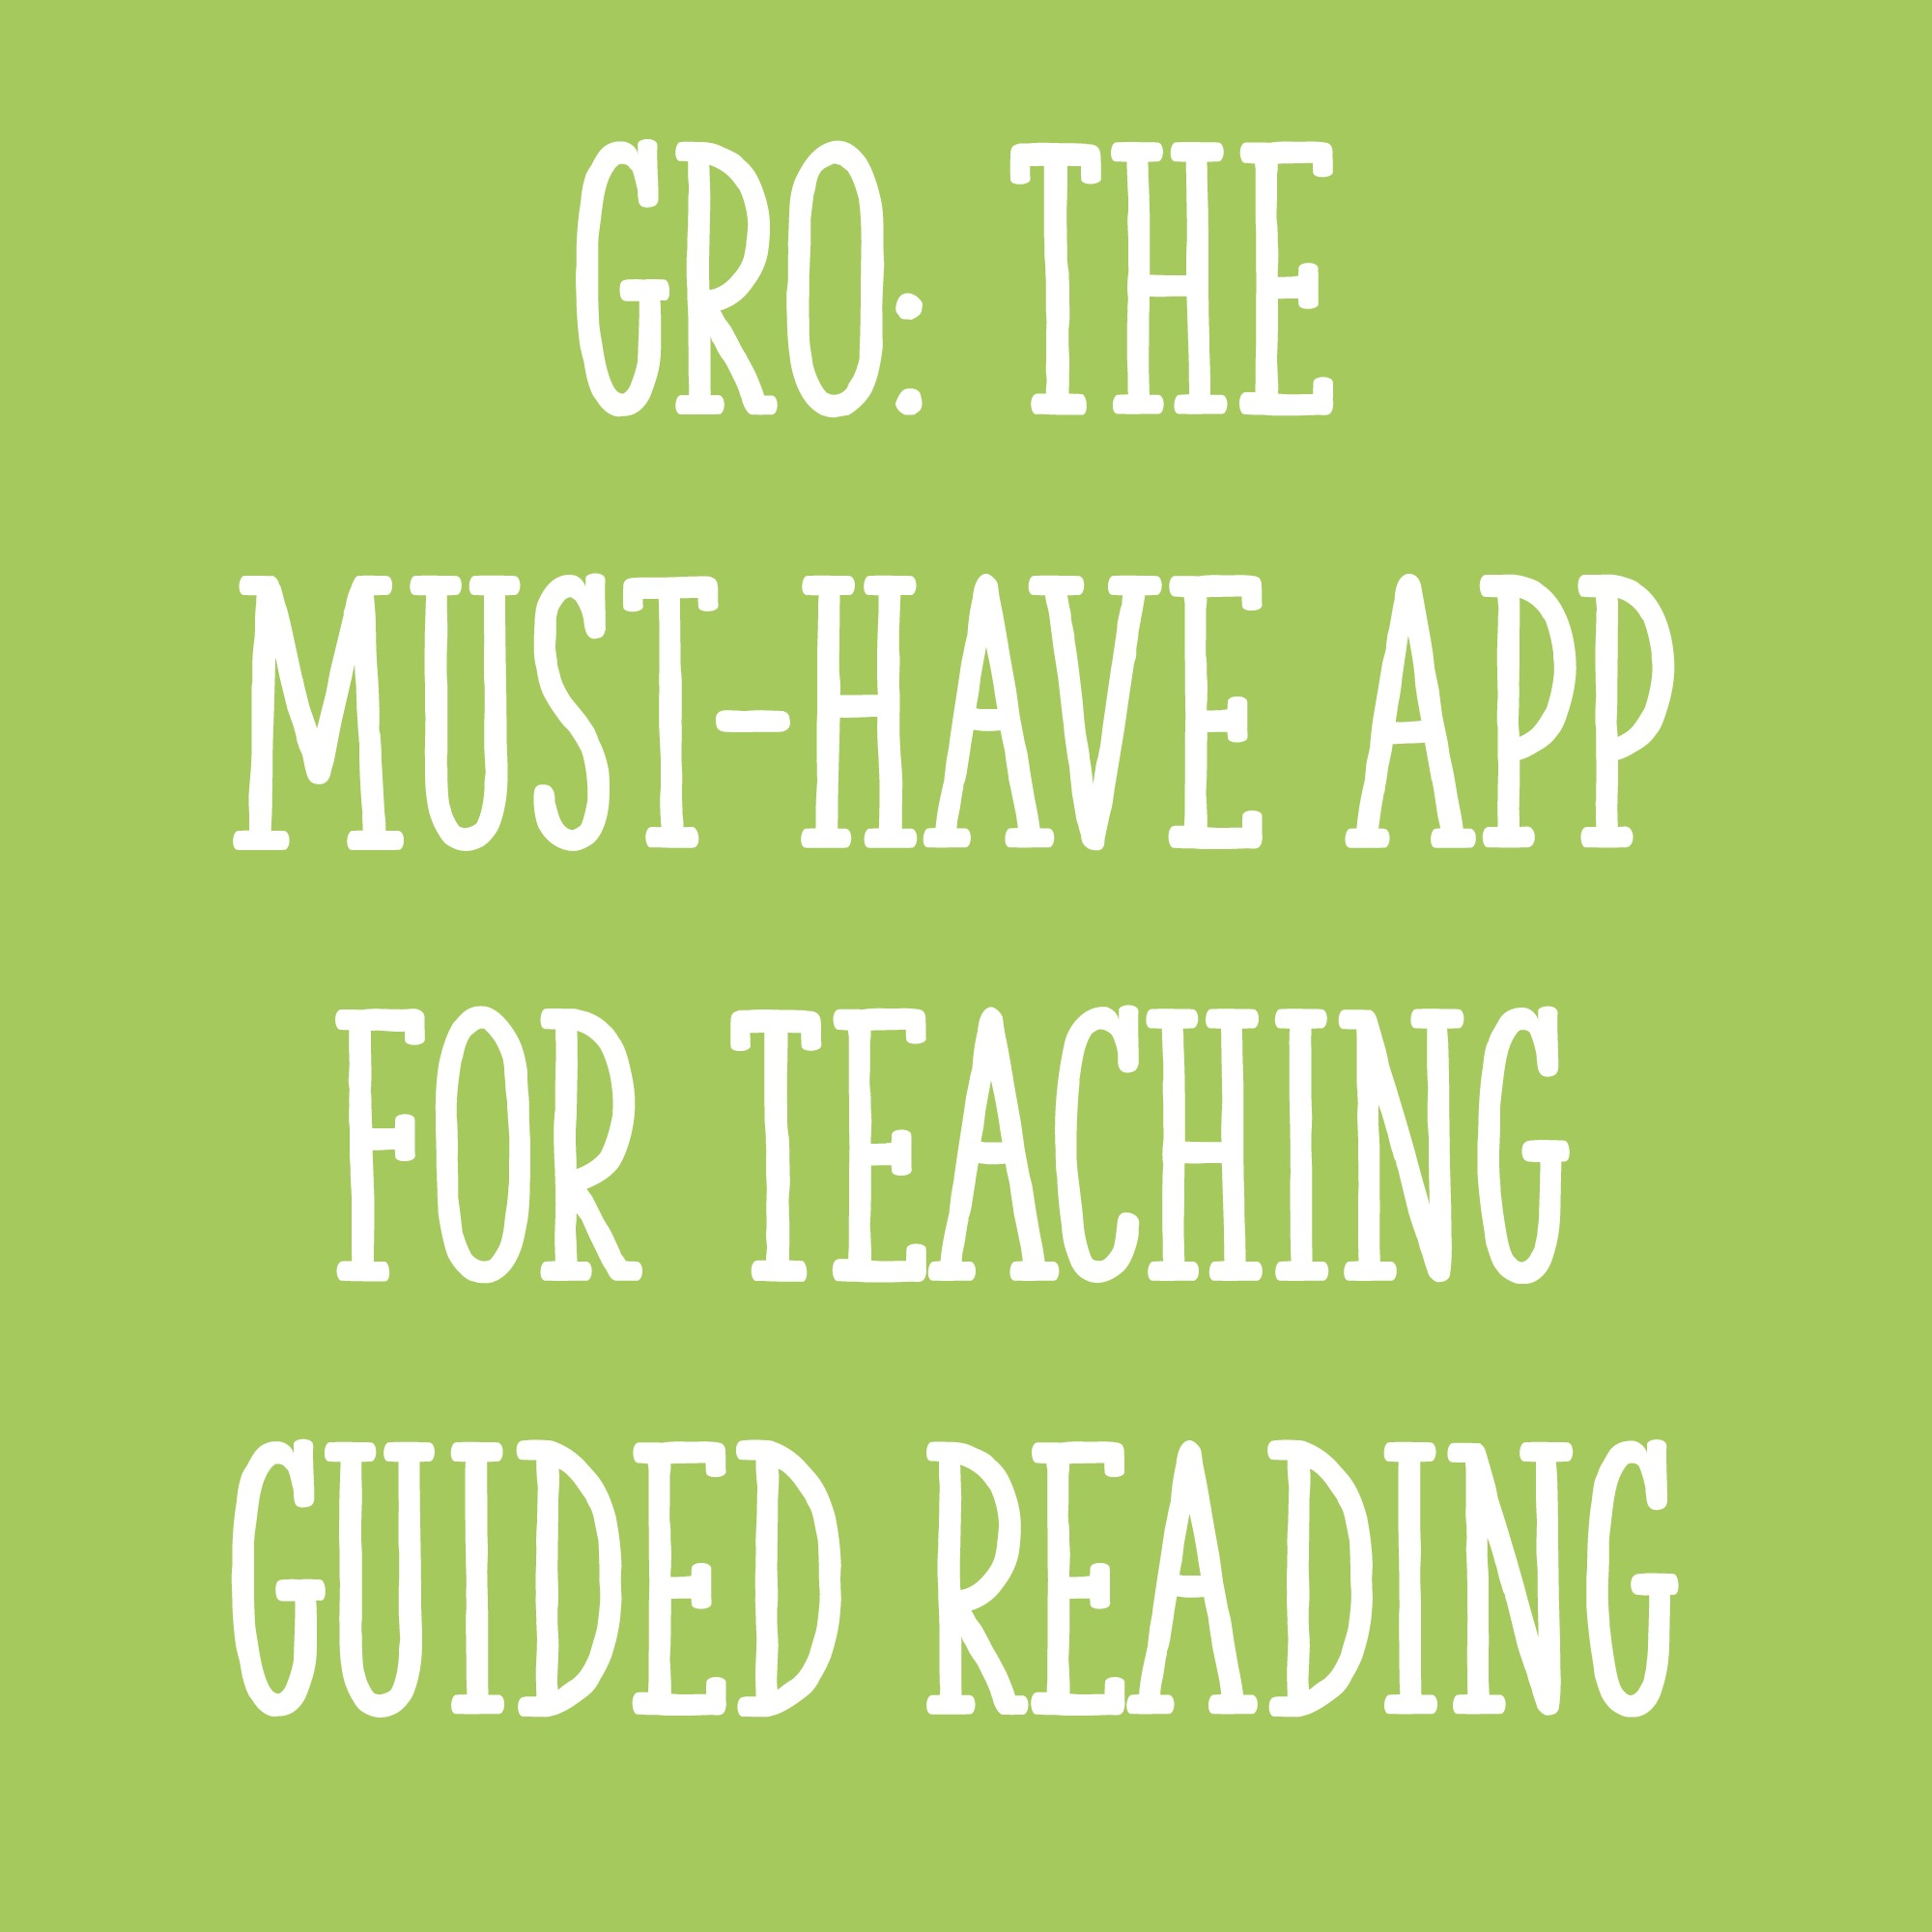 Gro the must have app for teaching guided reading learning at the gro the must have app for teaching guided reading learning at the primary pond geenschuldenfo Image collections